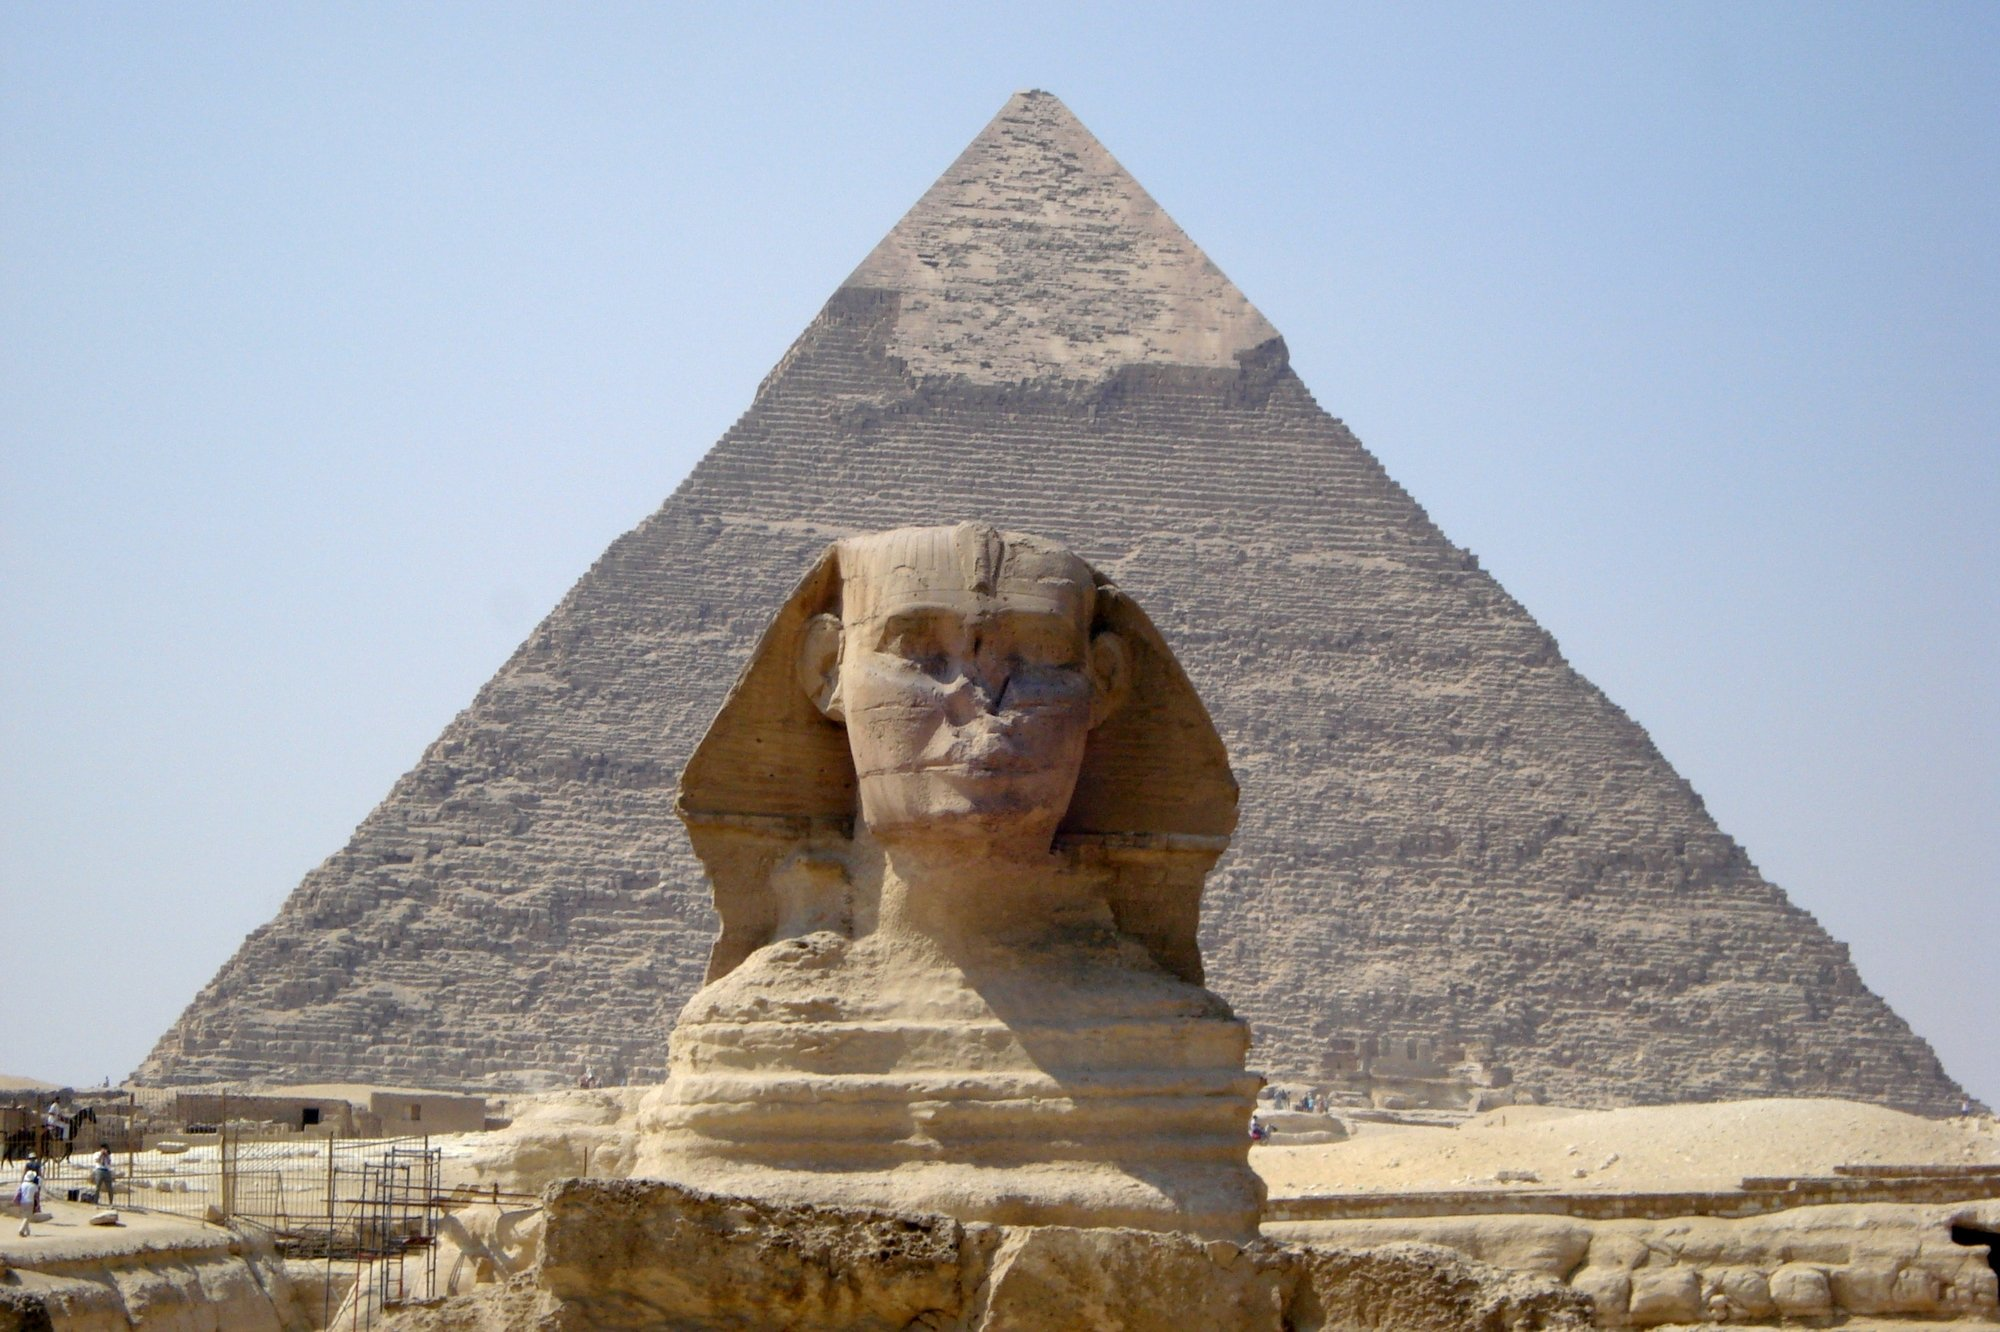 Sphinx in front of the Great Pyramid in Egypt